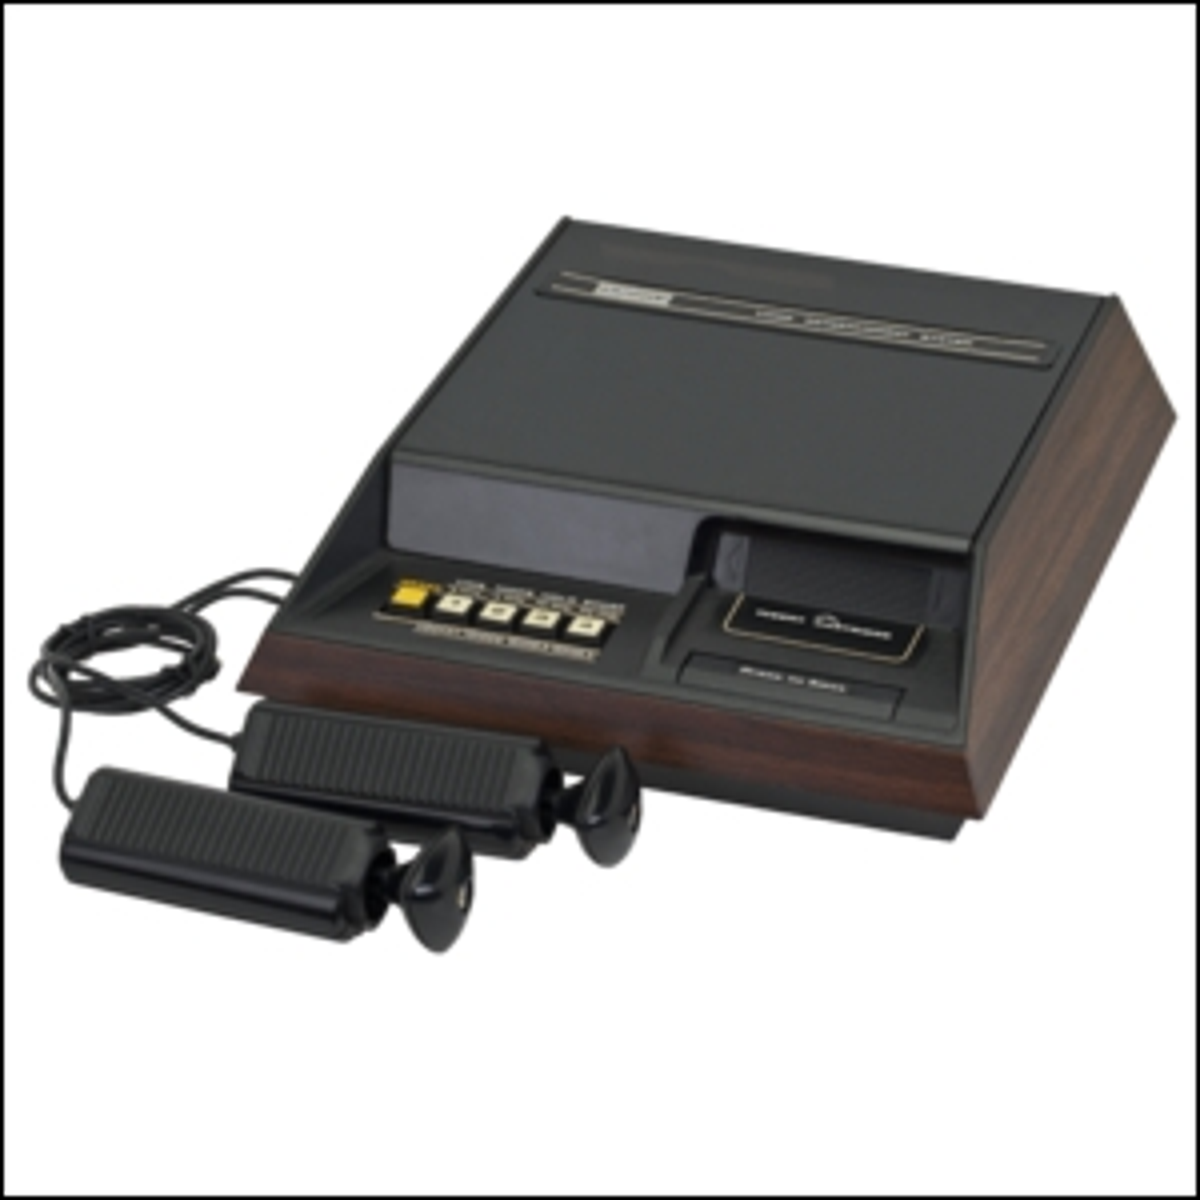 The Fairchild Channel F video game console with hard-wired controllers.